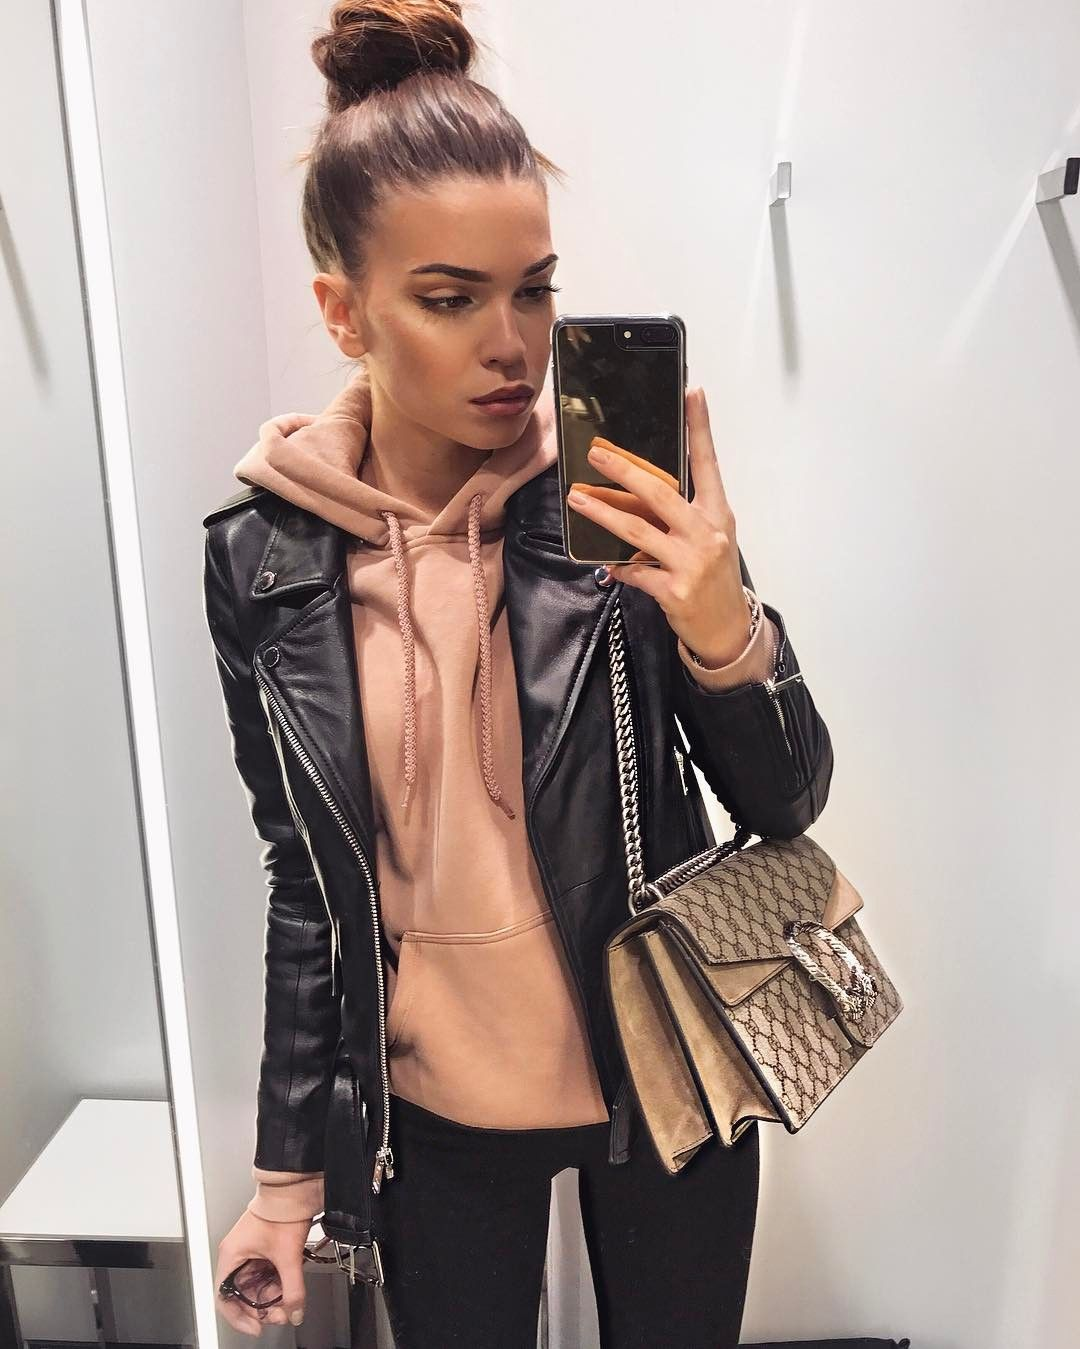 """27.2k Likes, 244 Comments - Iva Nikolina Juric (@ivanikolina) on Instagram: """"Haha so scared to say it but I think Autumn is there  #ootd"""""""